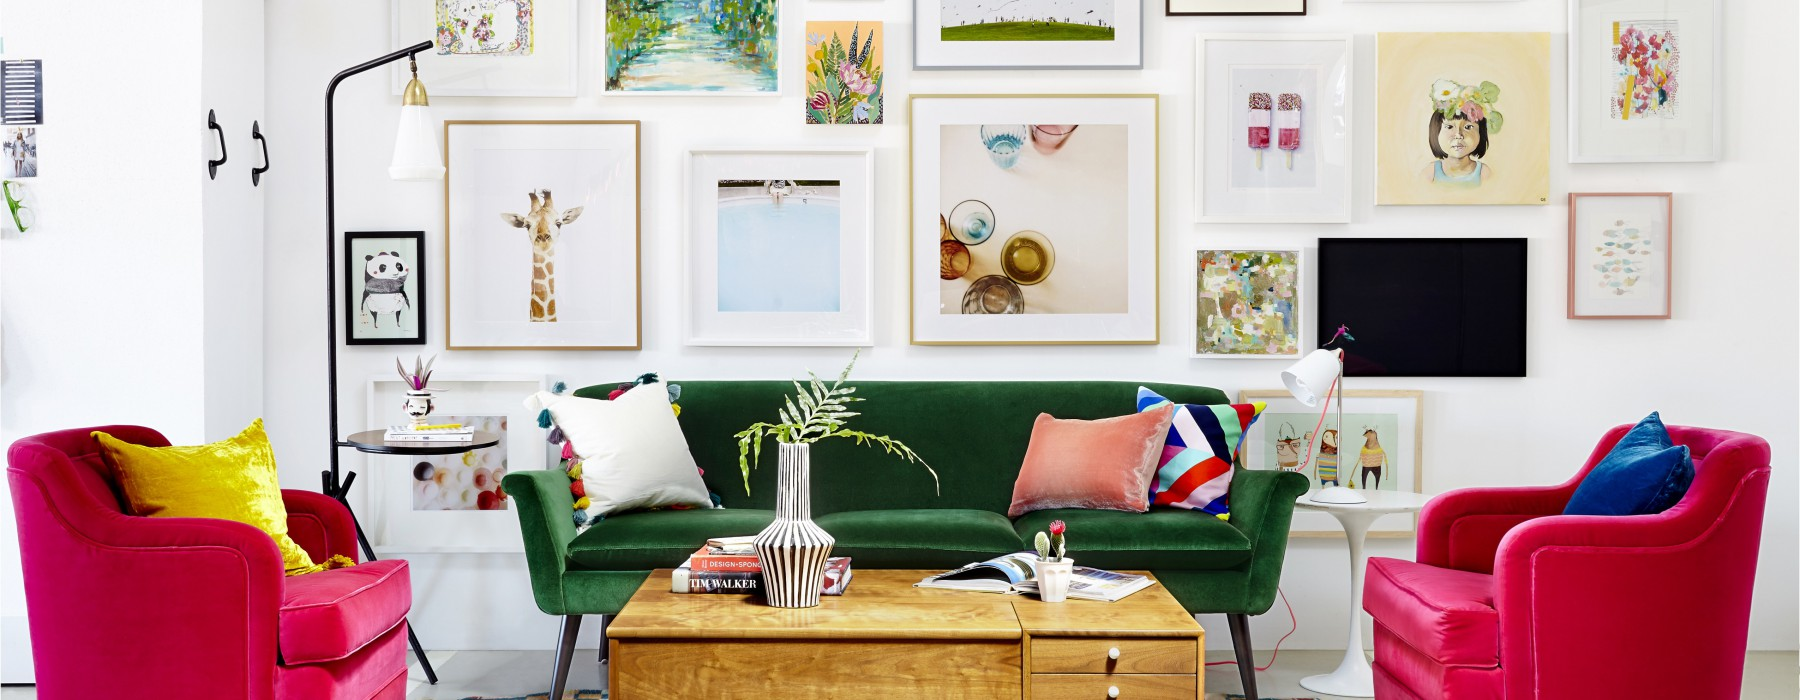 7 Tips on How to Hang Wall Art | Kathy Kuo Blog | Kathy Kuo Home